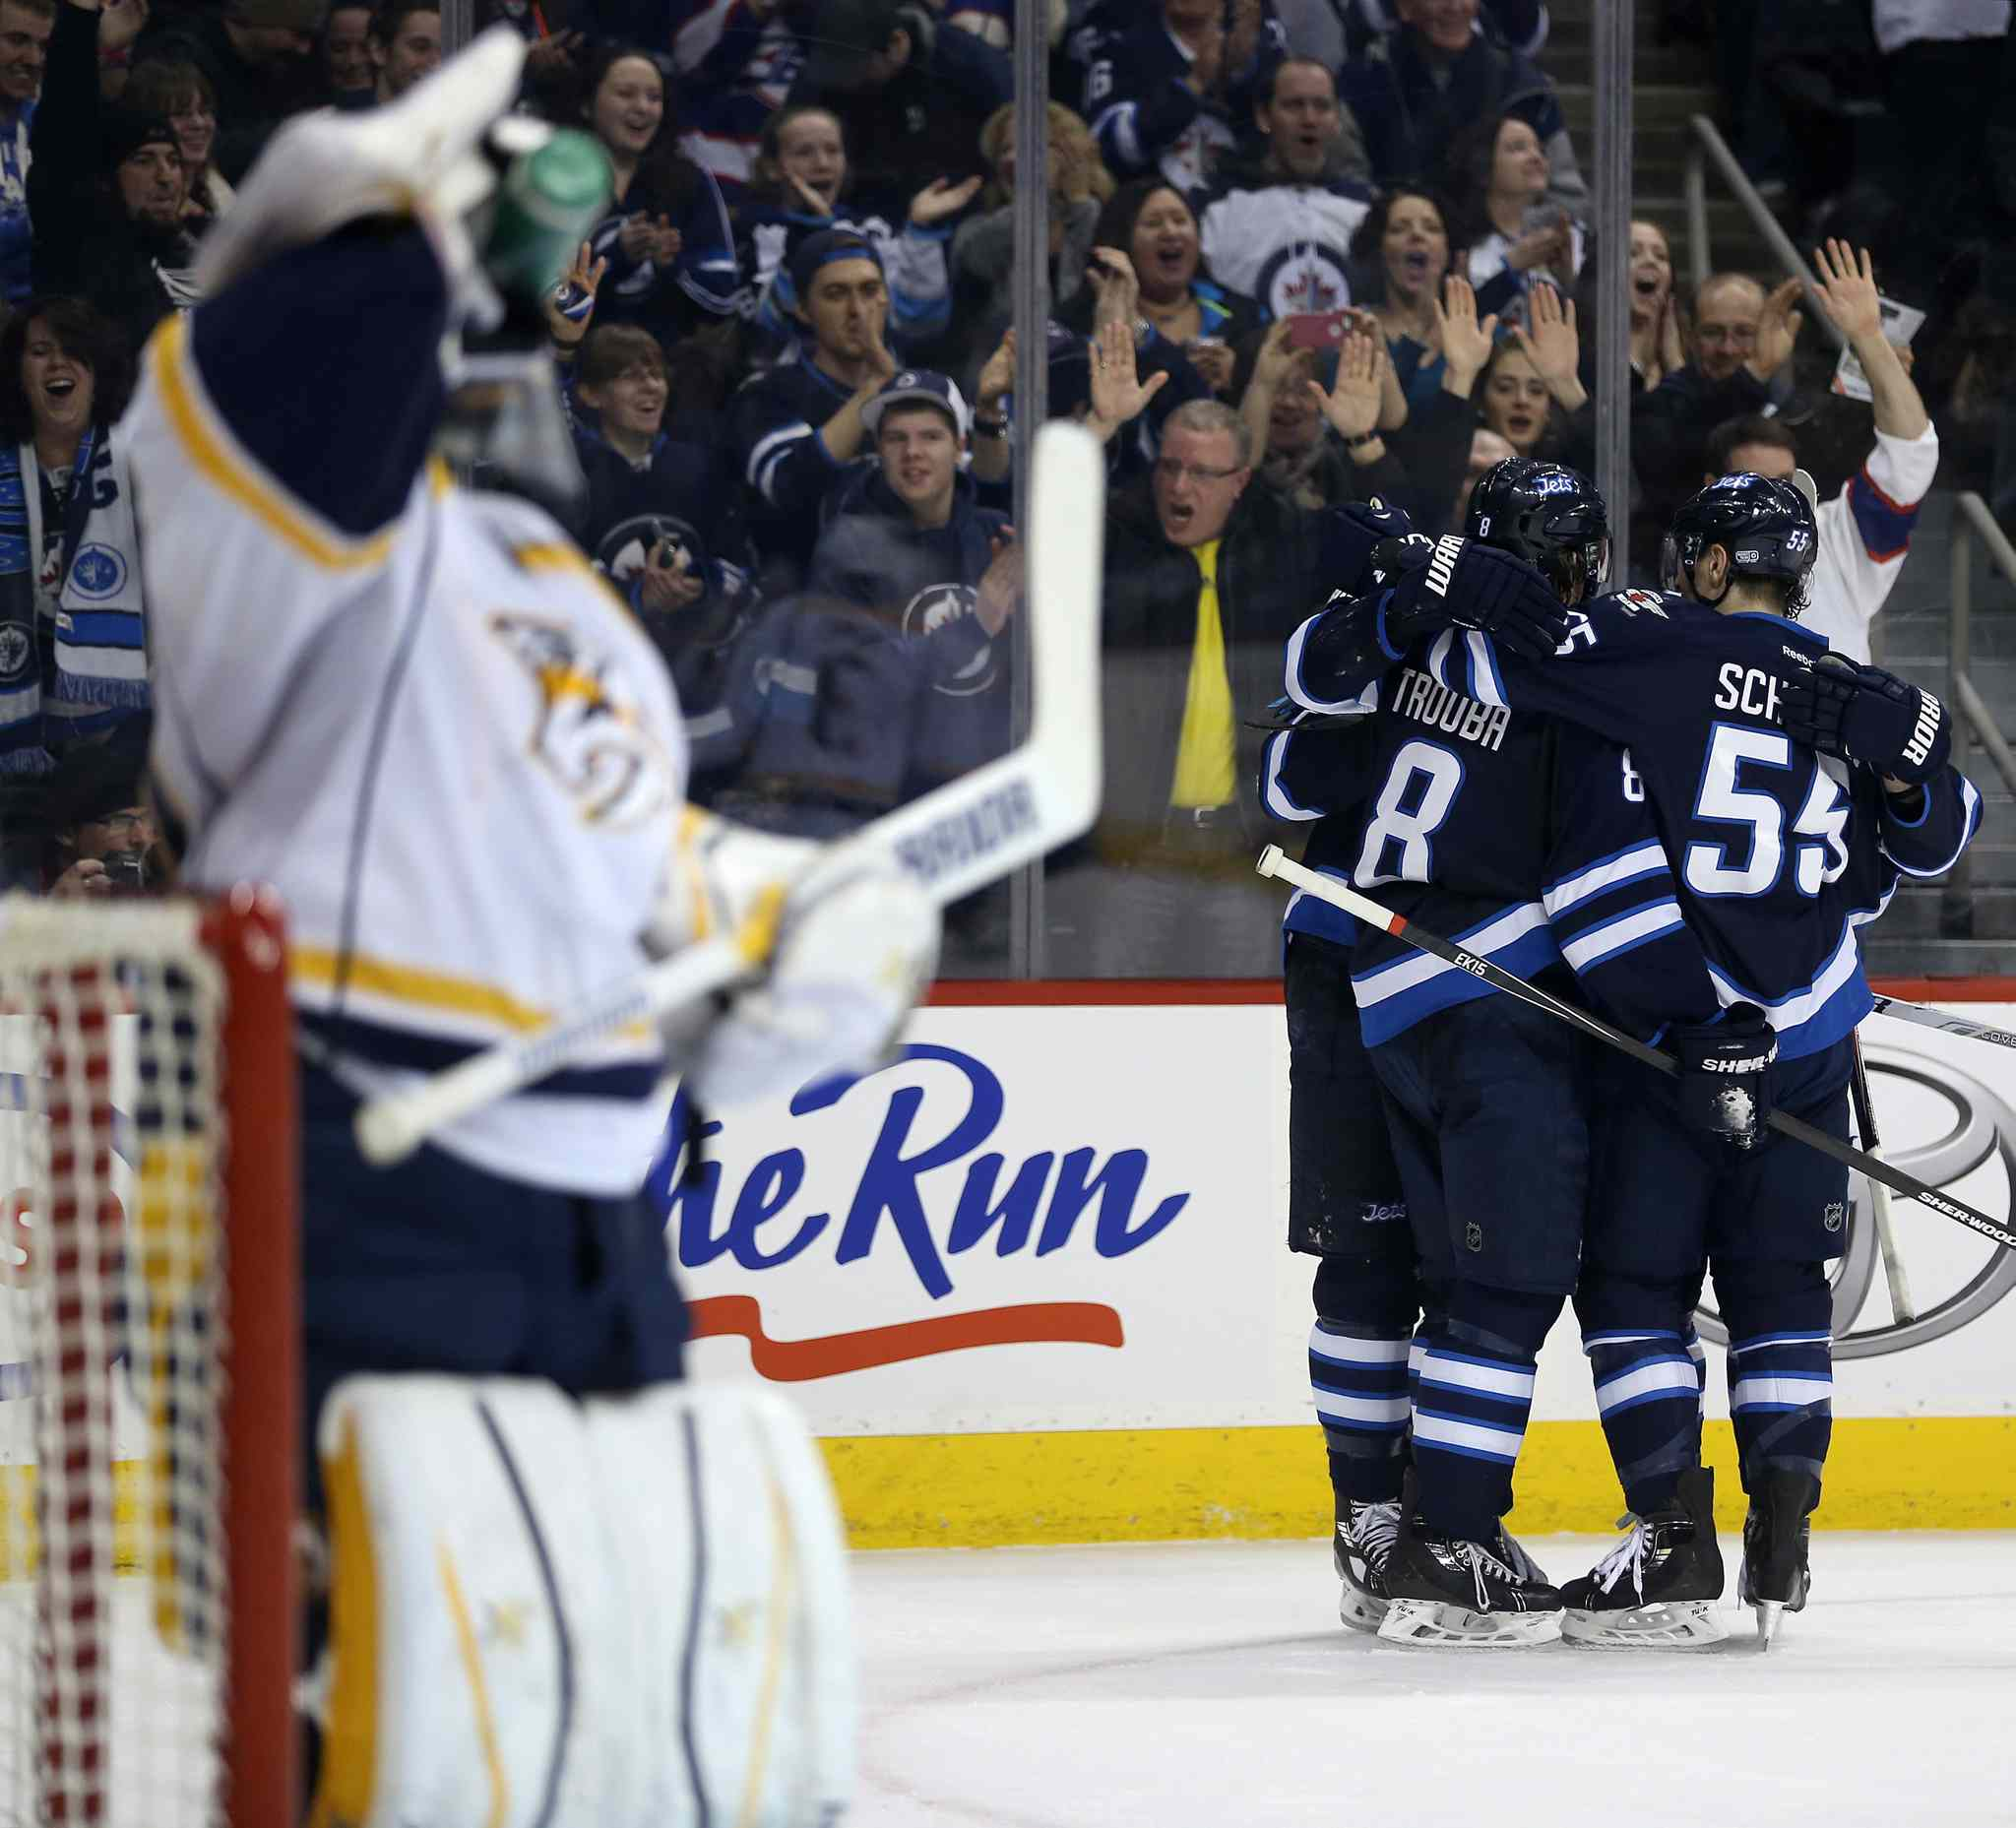 Winnipeg Jets players celebrate a goal by teammate Blake Wheeler (26) after he beat Nashville Predators' goaltender Carter Hutton (30) during second period NHL hockey action in Winnipeg.